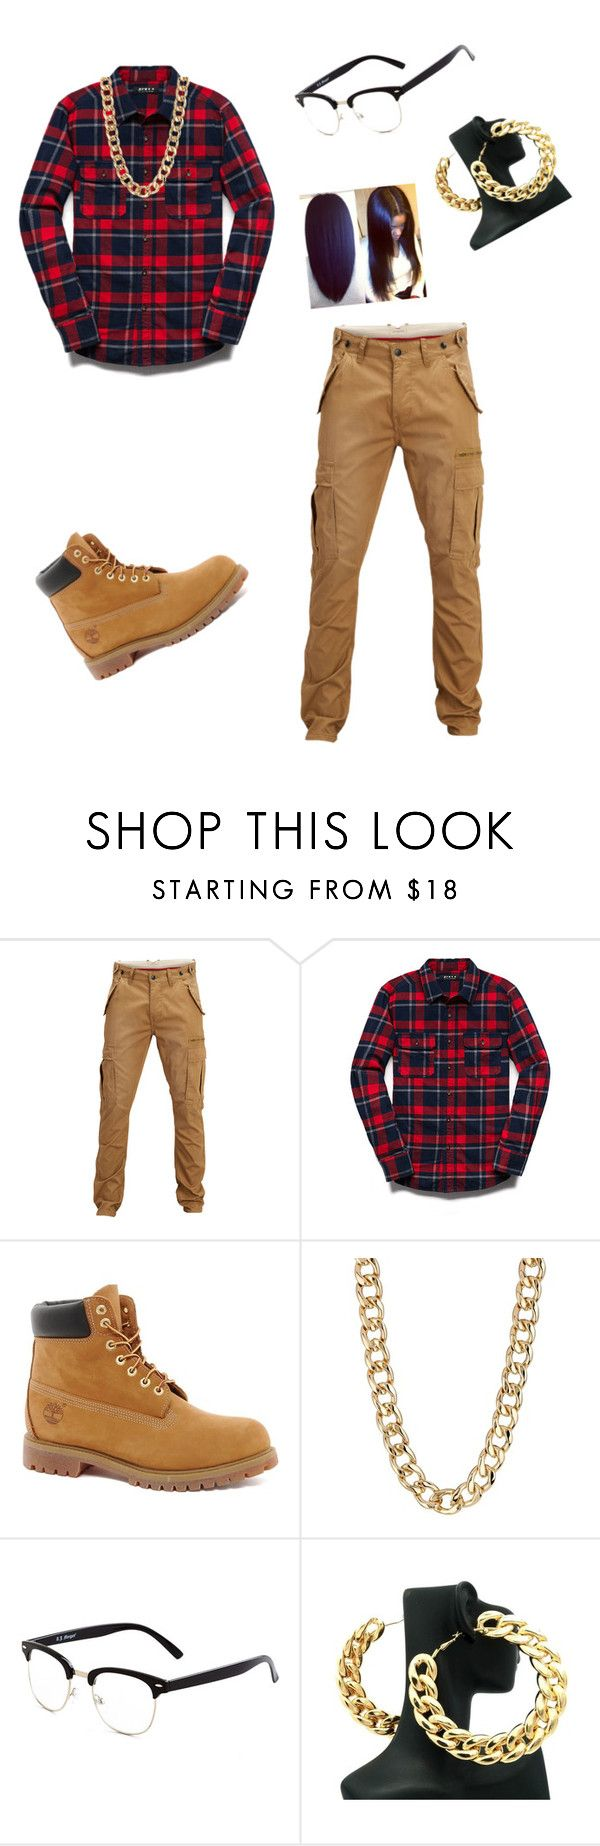 """Untitled #369"" by cvkreflection ❤ liked on Polyvore featuring SELECTED, 21 Men, Timberland and 14th & Union"